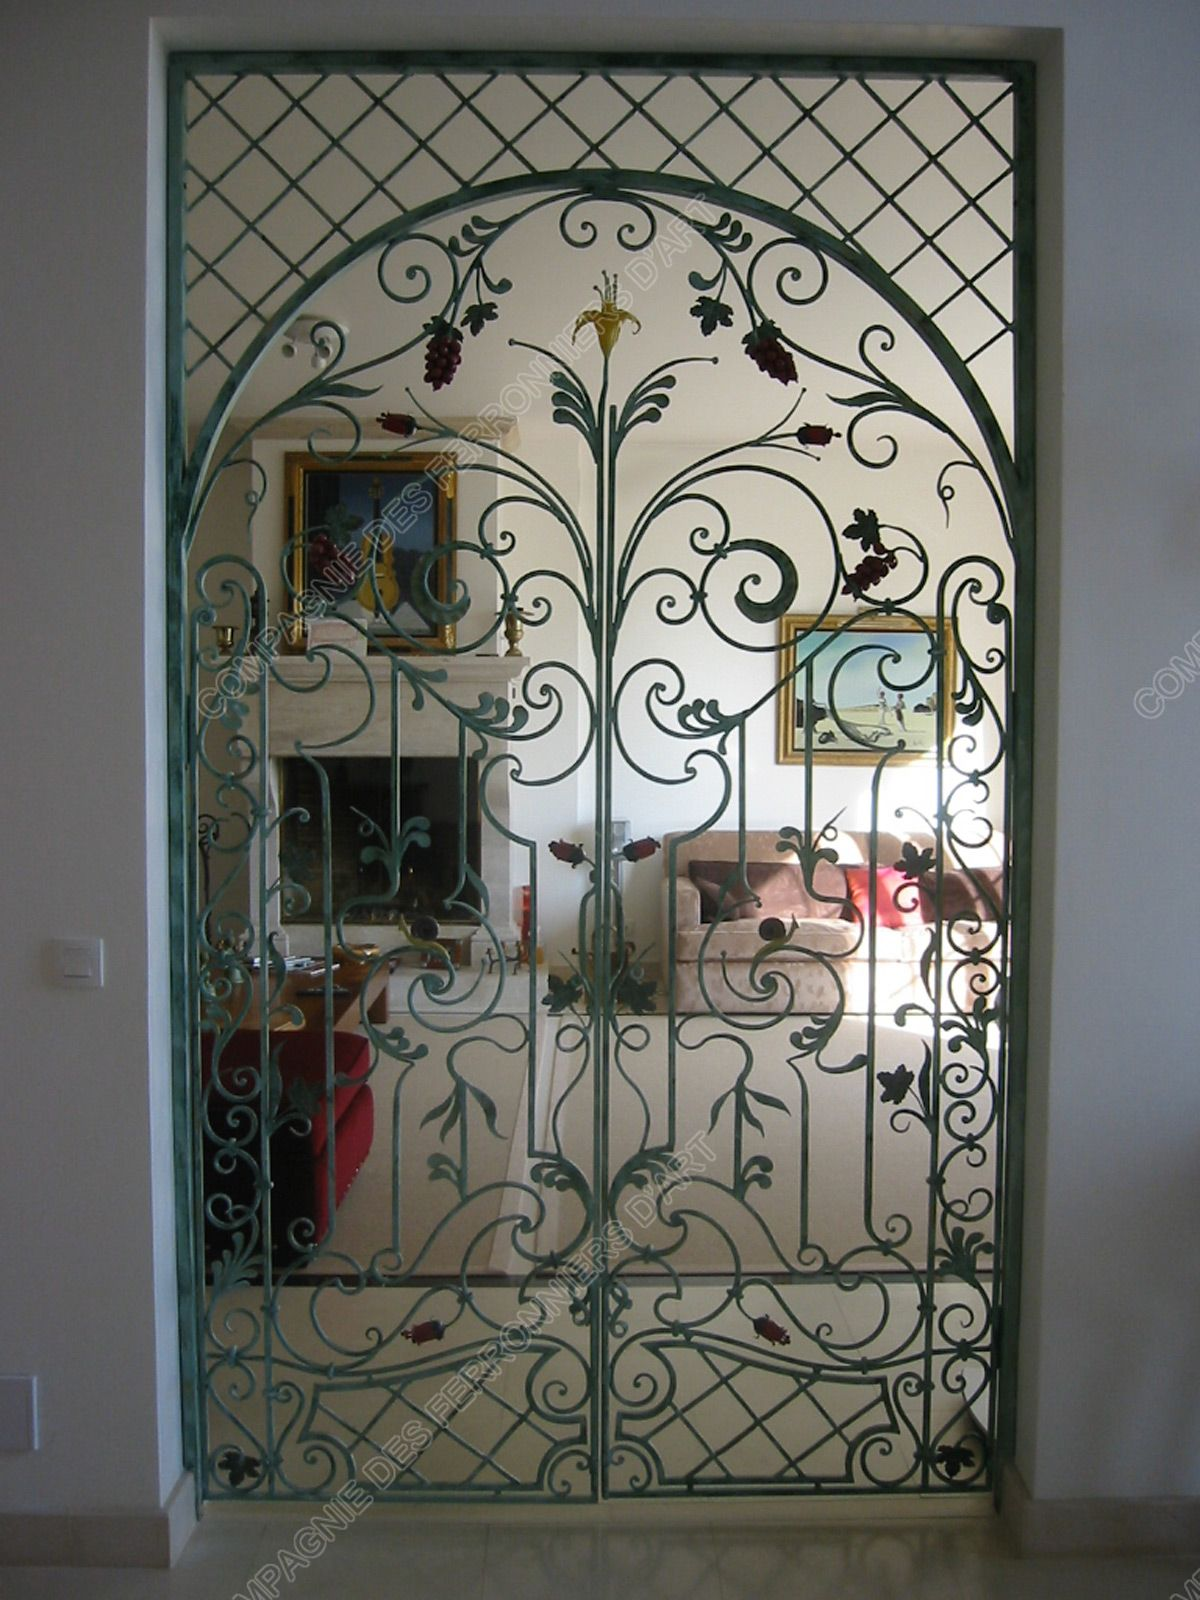 Grilles de defense style decoratif modele porte separation baroque 1 200 1 600 pixels for Photo porte en fer forge